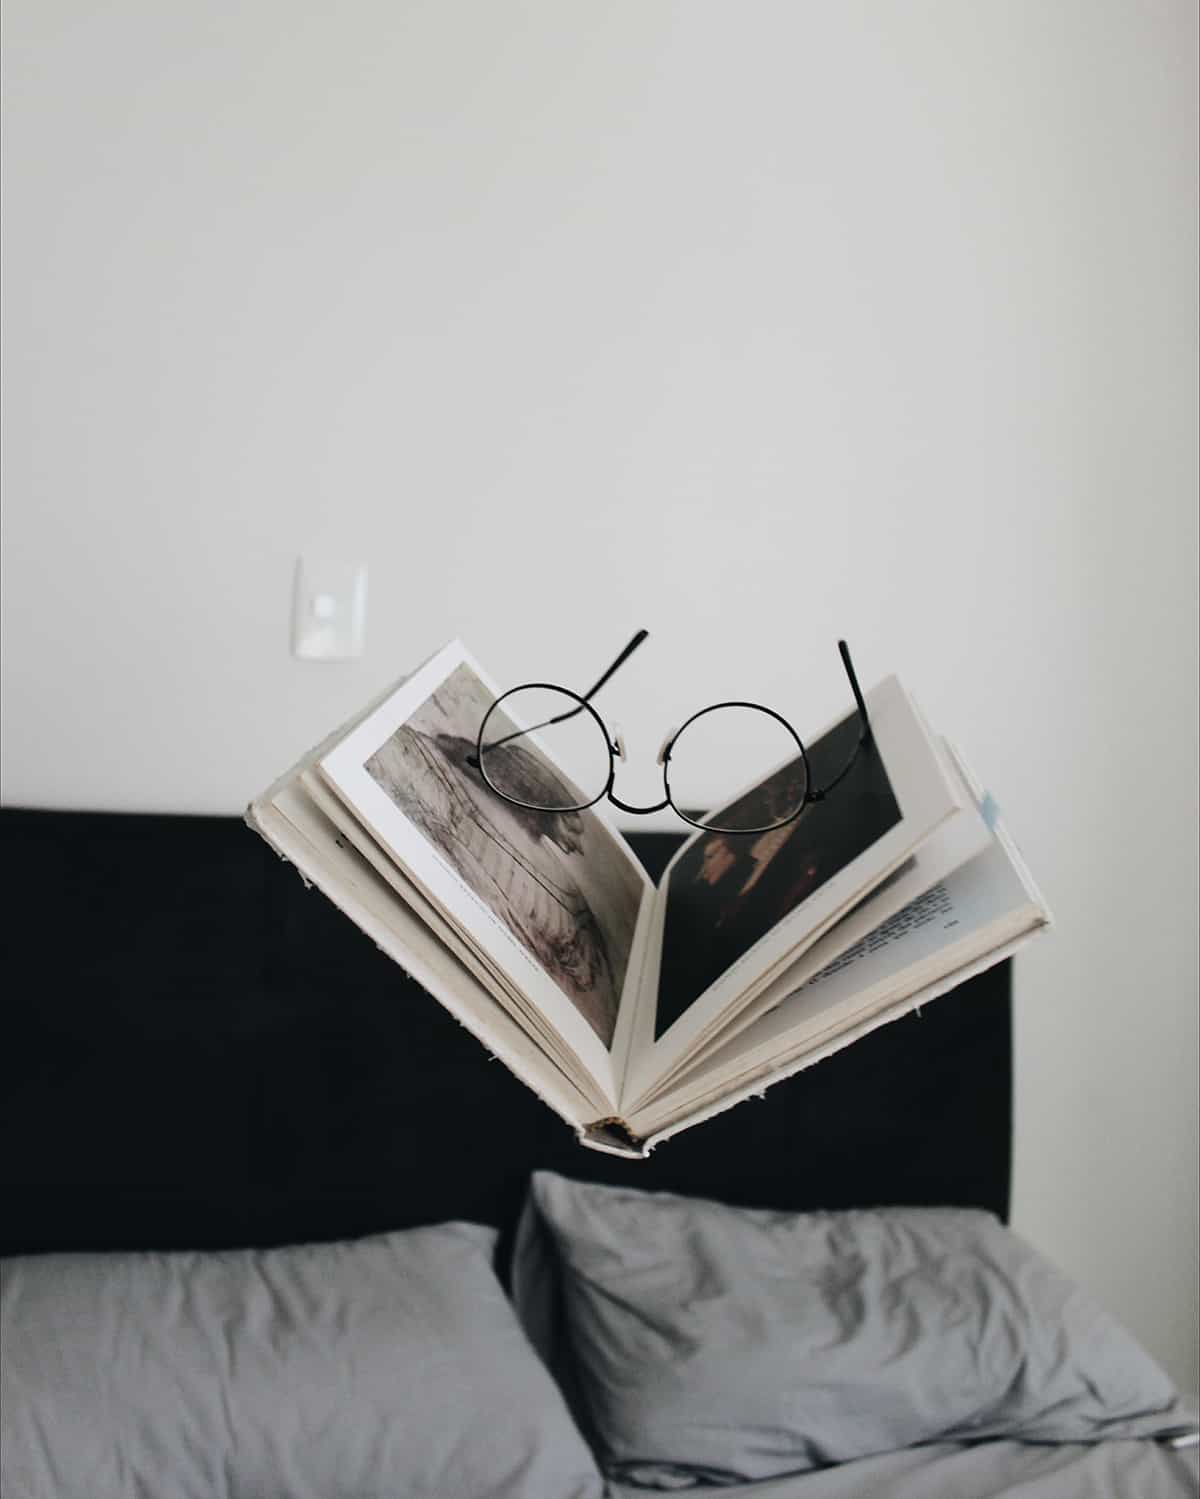 book and glasses over bed